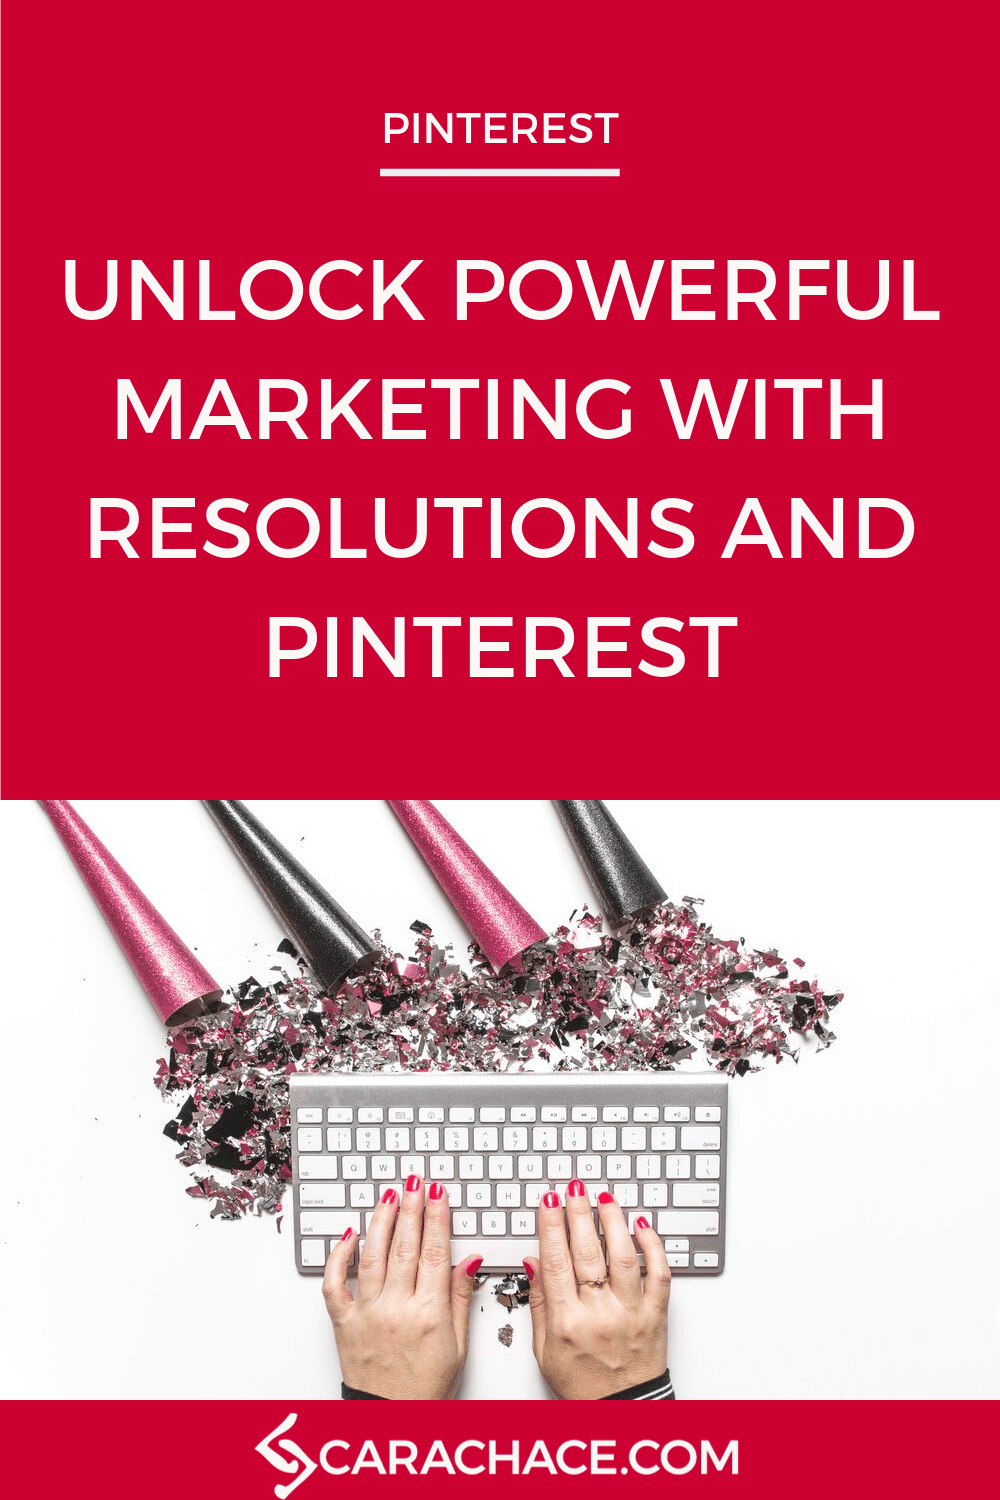 New Year's Resolutions can be a powerful marketing strategy for your small business on Pinterest. Learn how to think like your target audience on Pinterest and give them solutions to the problems they're trying to solve. Learn more inside at pinterestpowerup.com #pinterestmarketing #pinteresttips #carachace